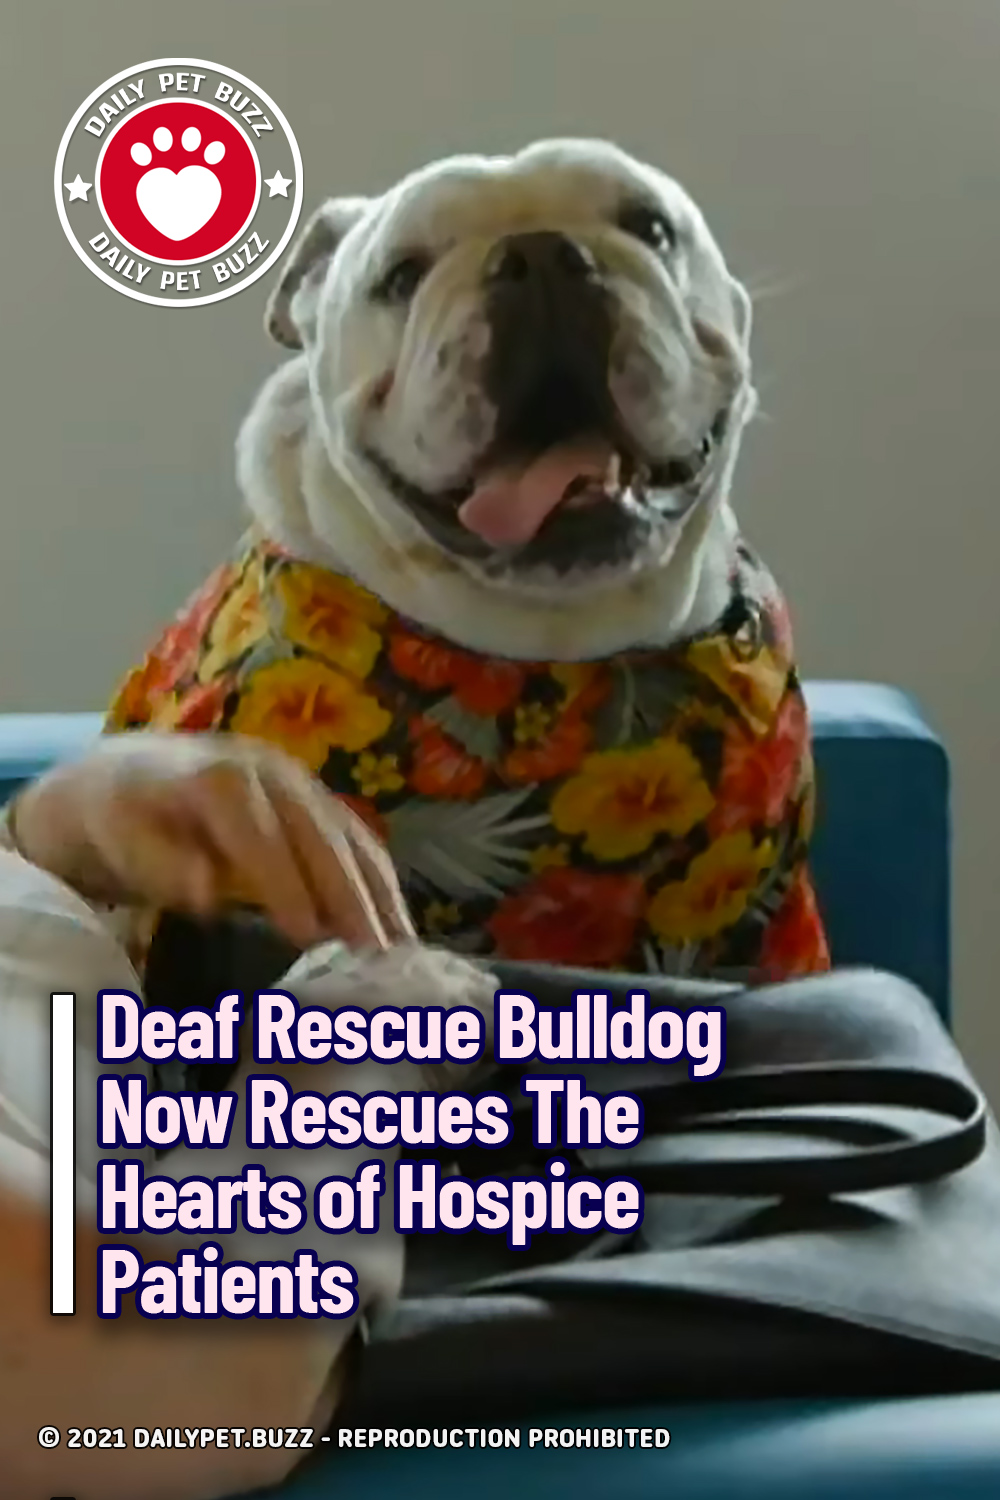 Deaf Rescue Bulldog Now Rescues The Hearts of Hospice Patients